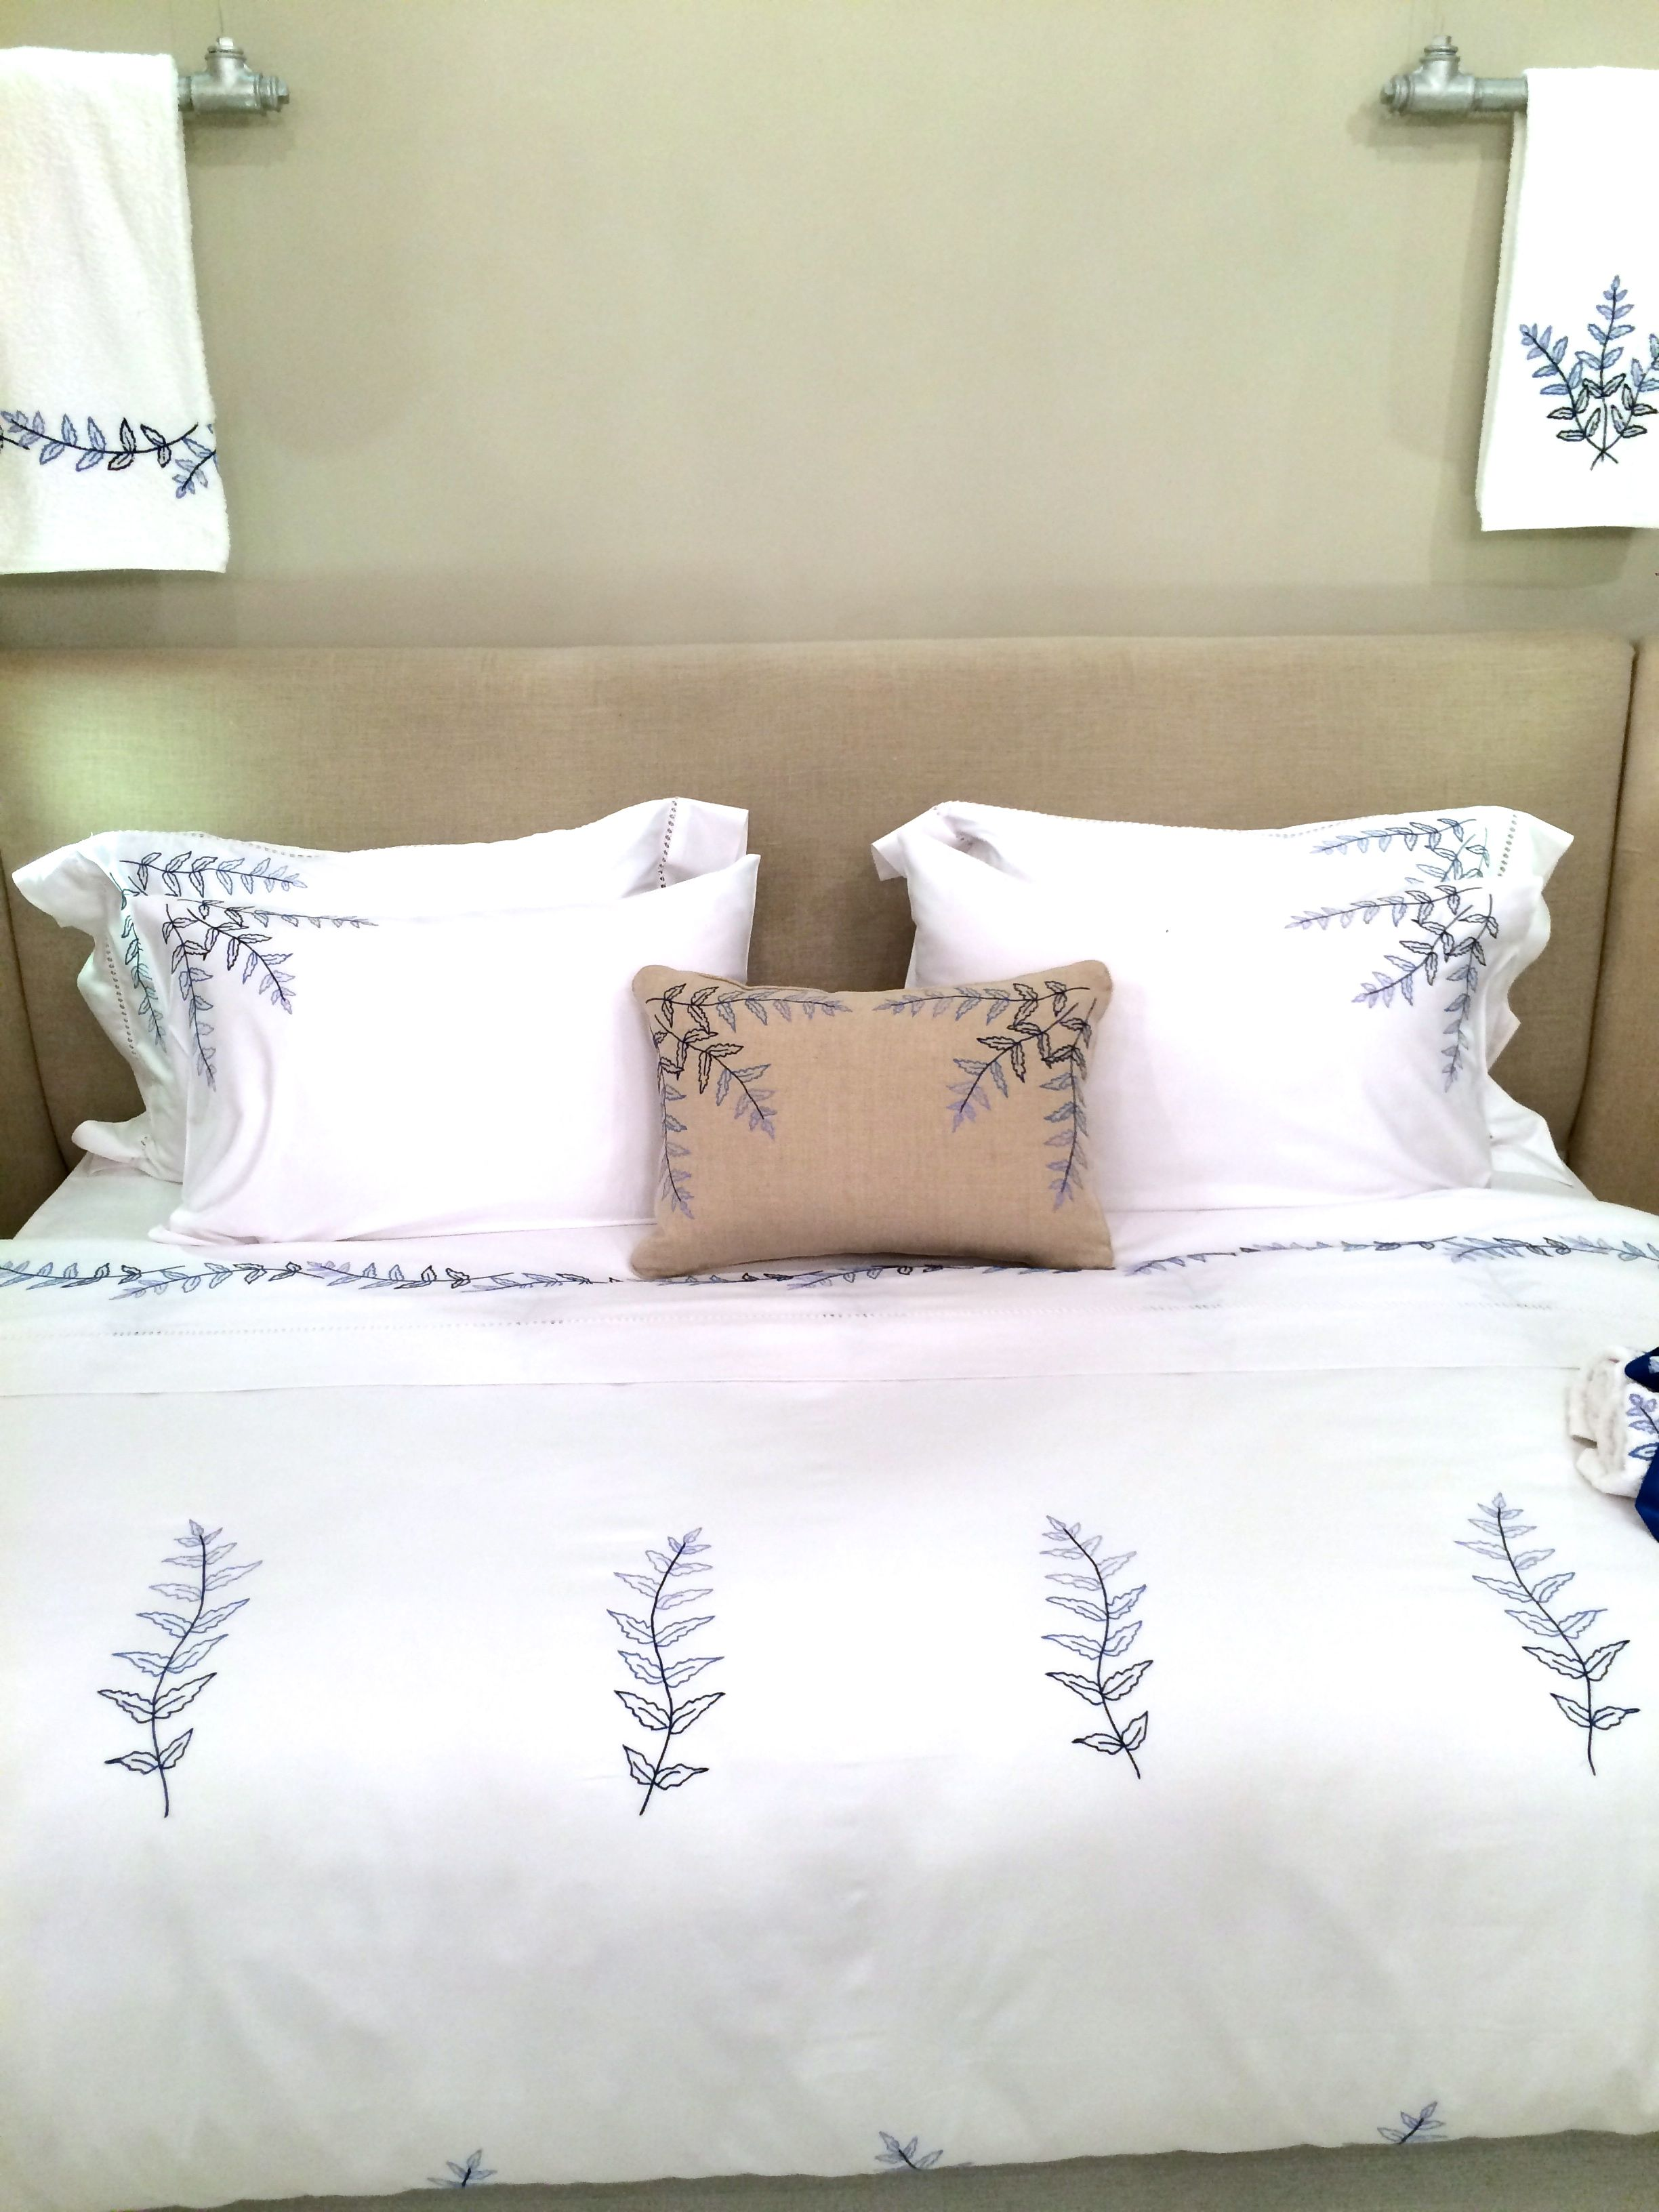 Etonnant 800 Thread Count Egyptian Cotton Bed Sheets With Our Very Own Fougere  Collection Hand Embroidered By